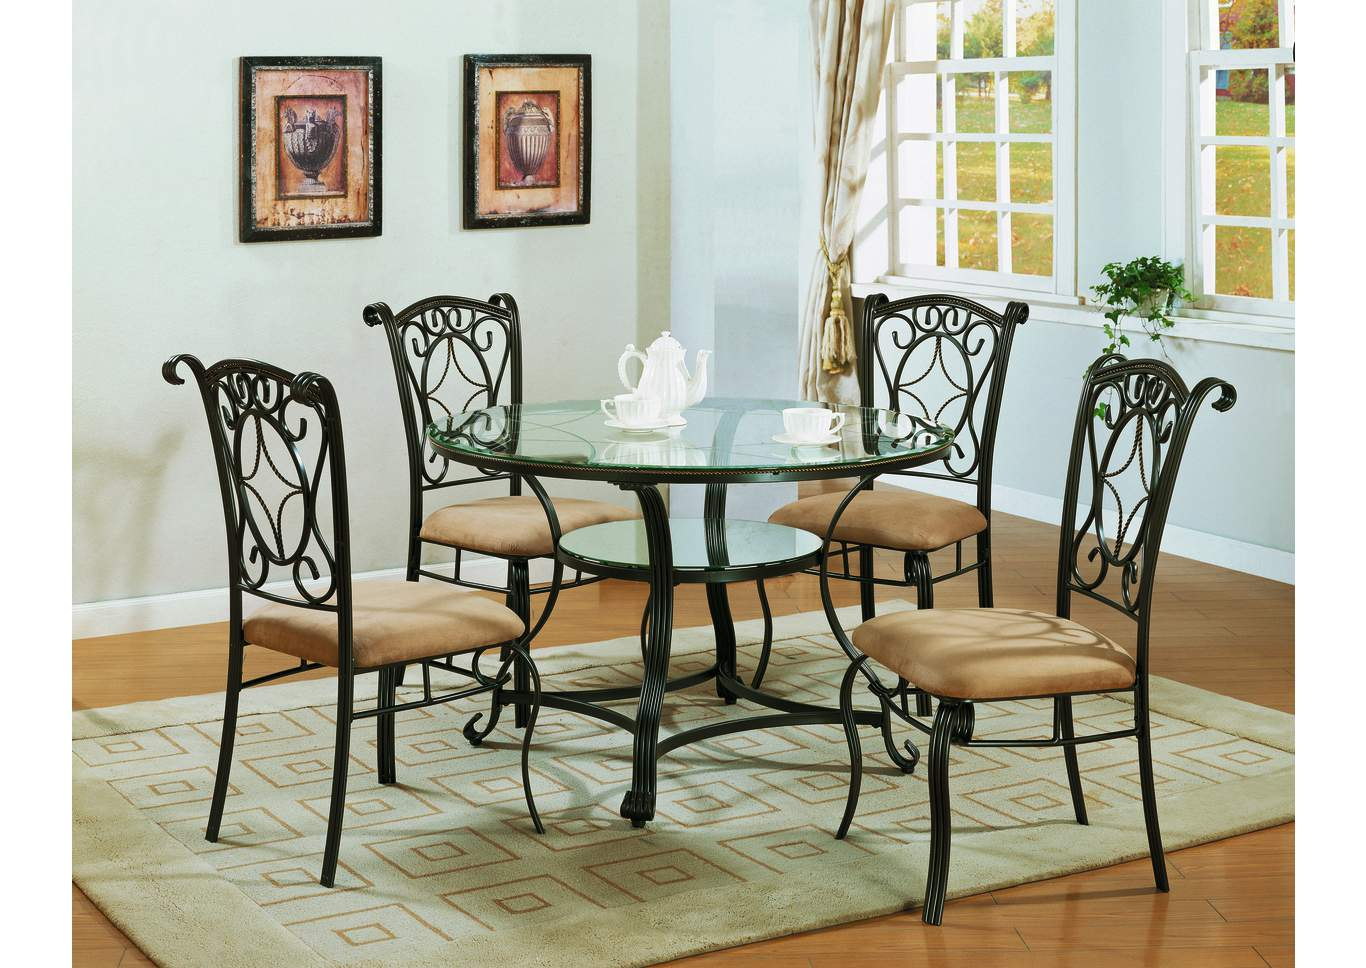 ware house furniture jessica round dining room table w 4